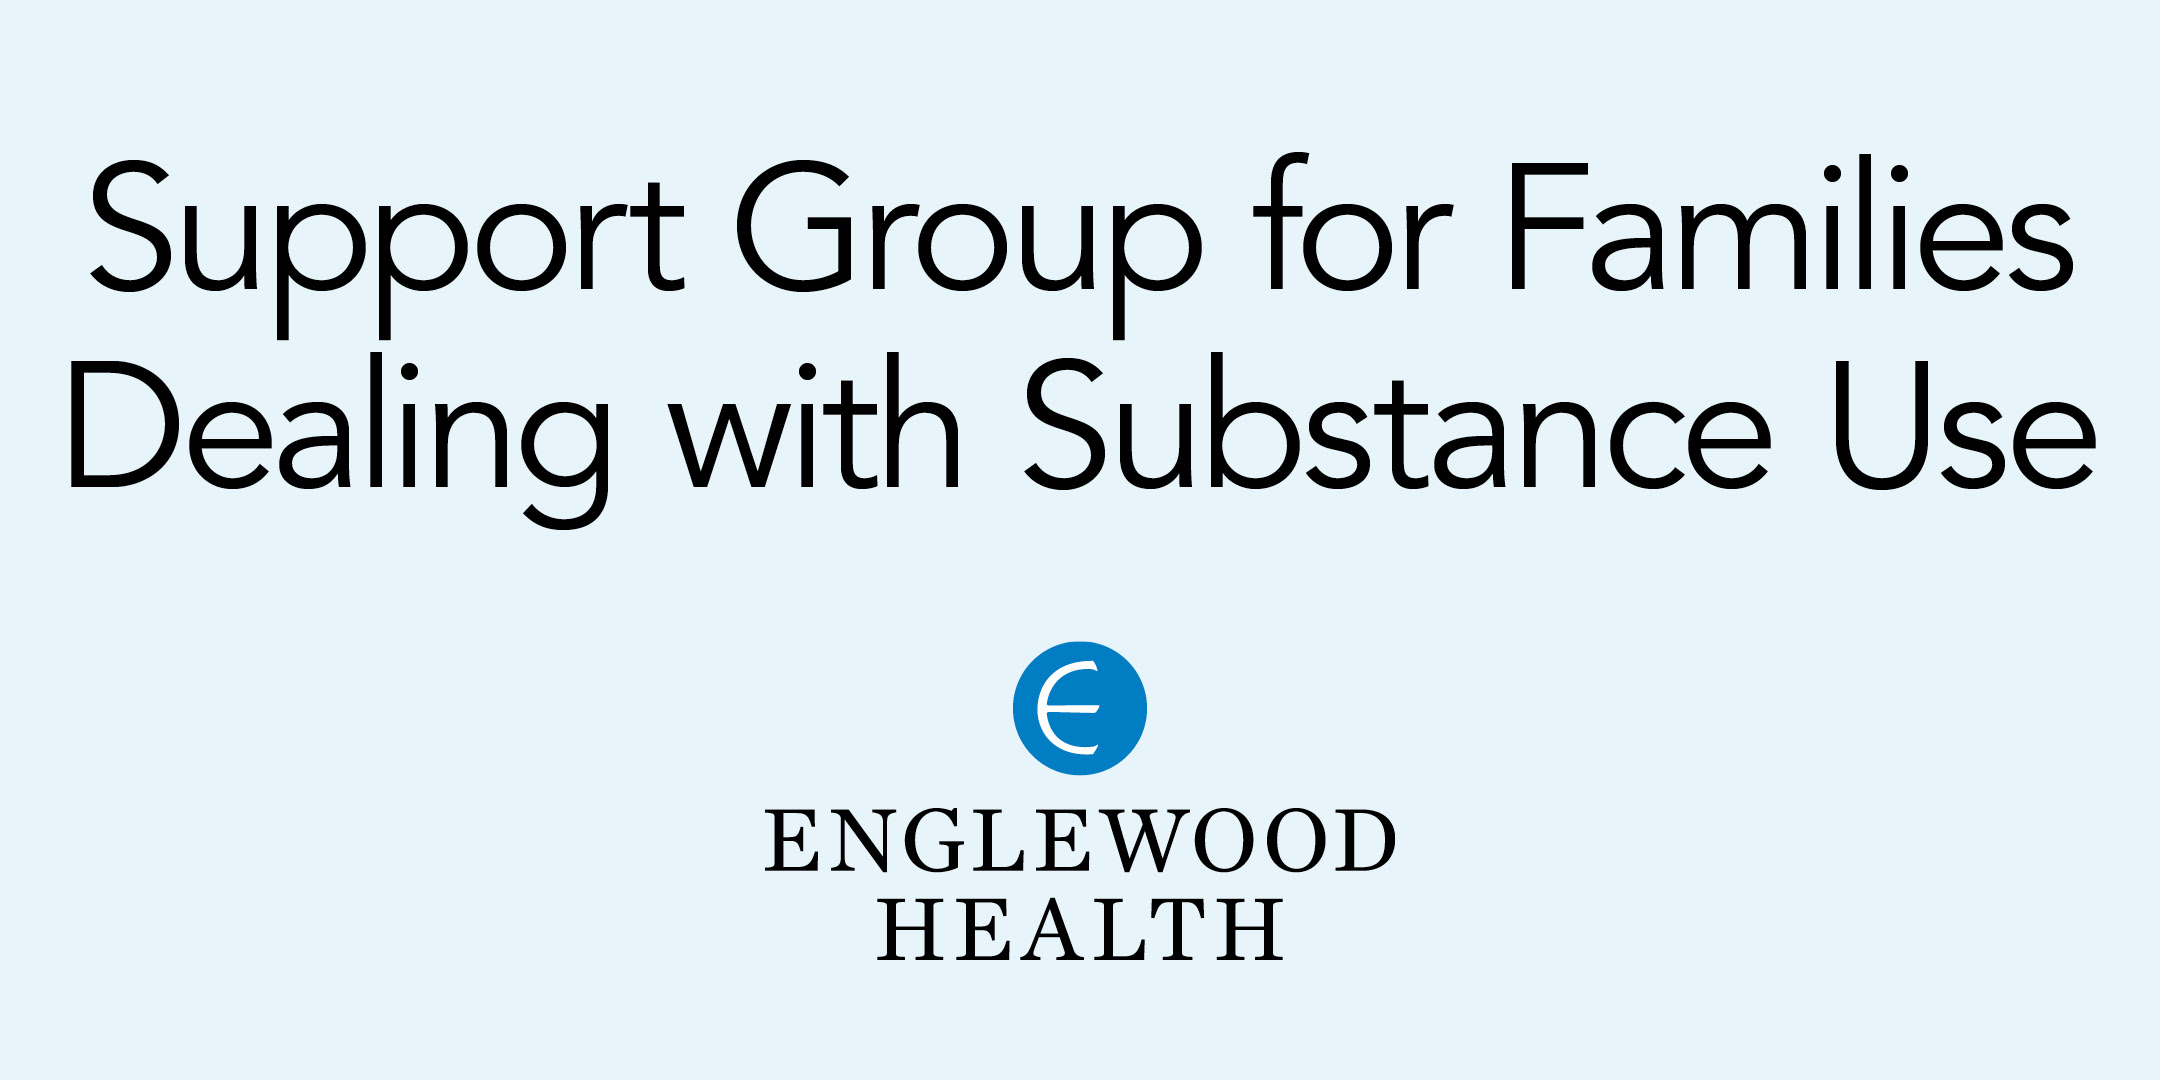 More info: Support Group for Families Dealing with Substance Use